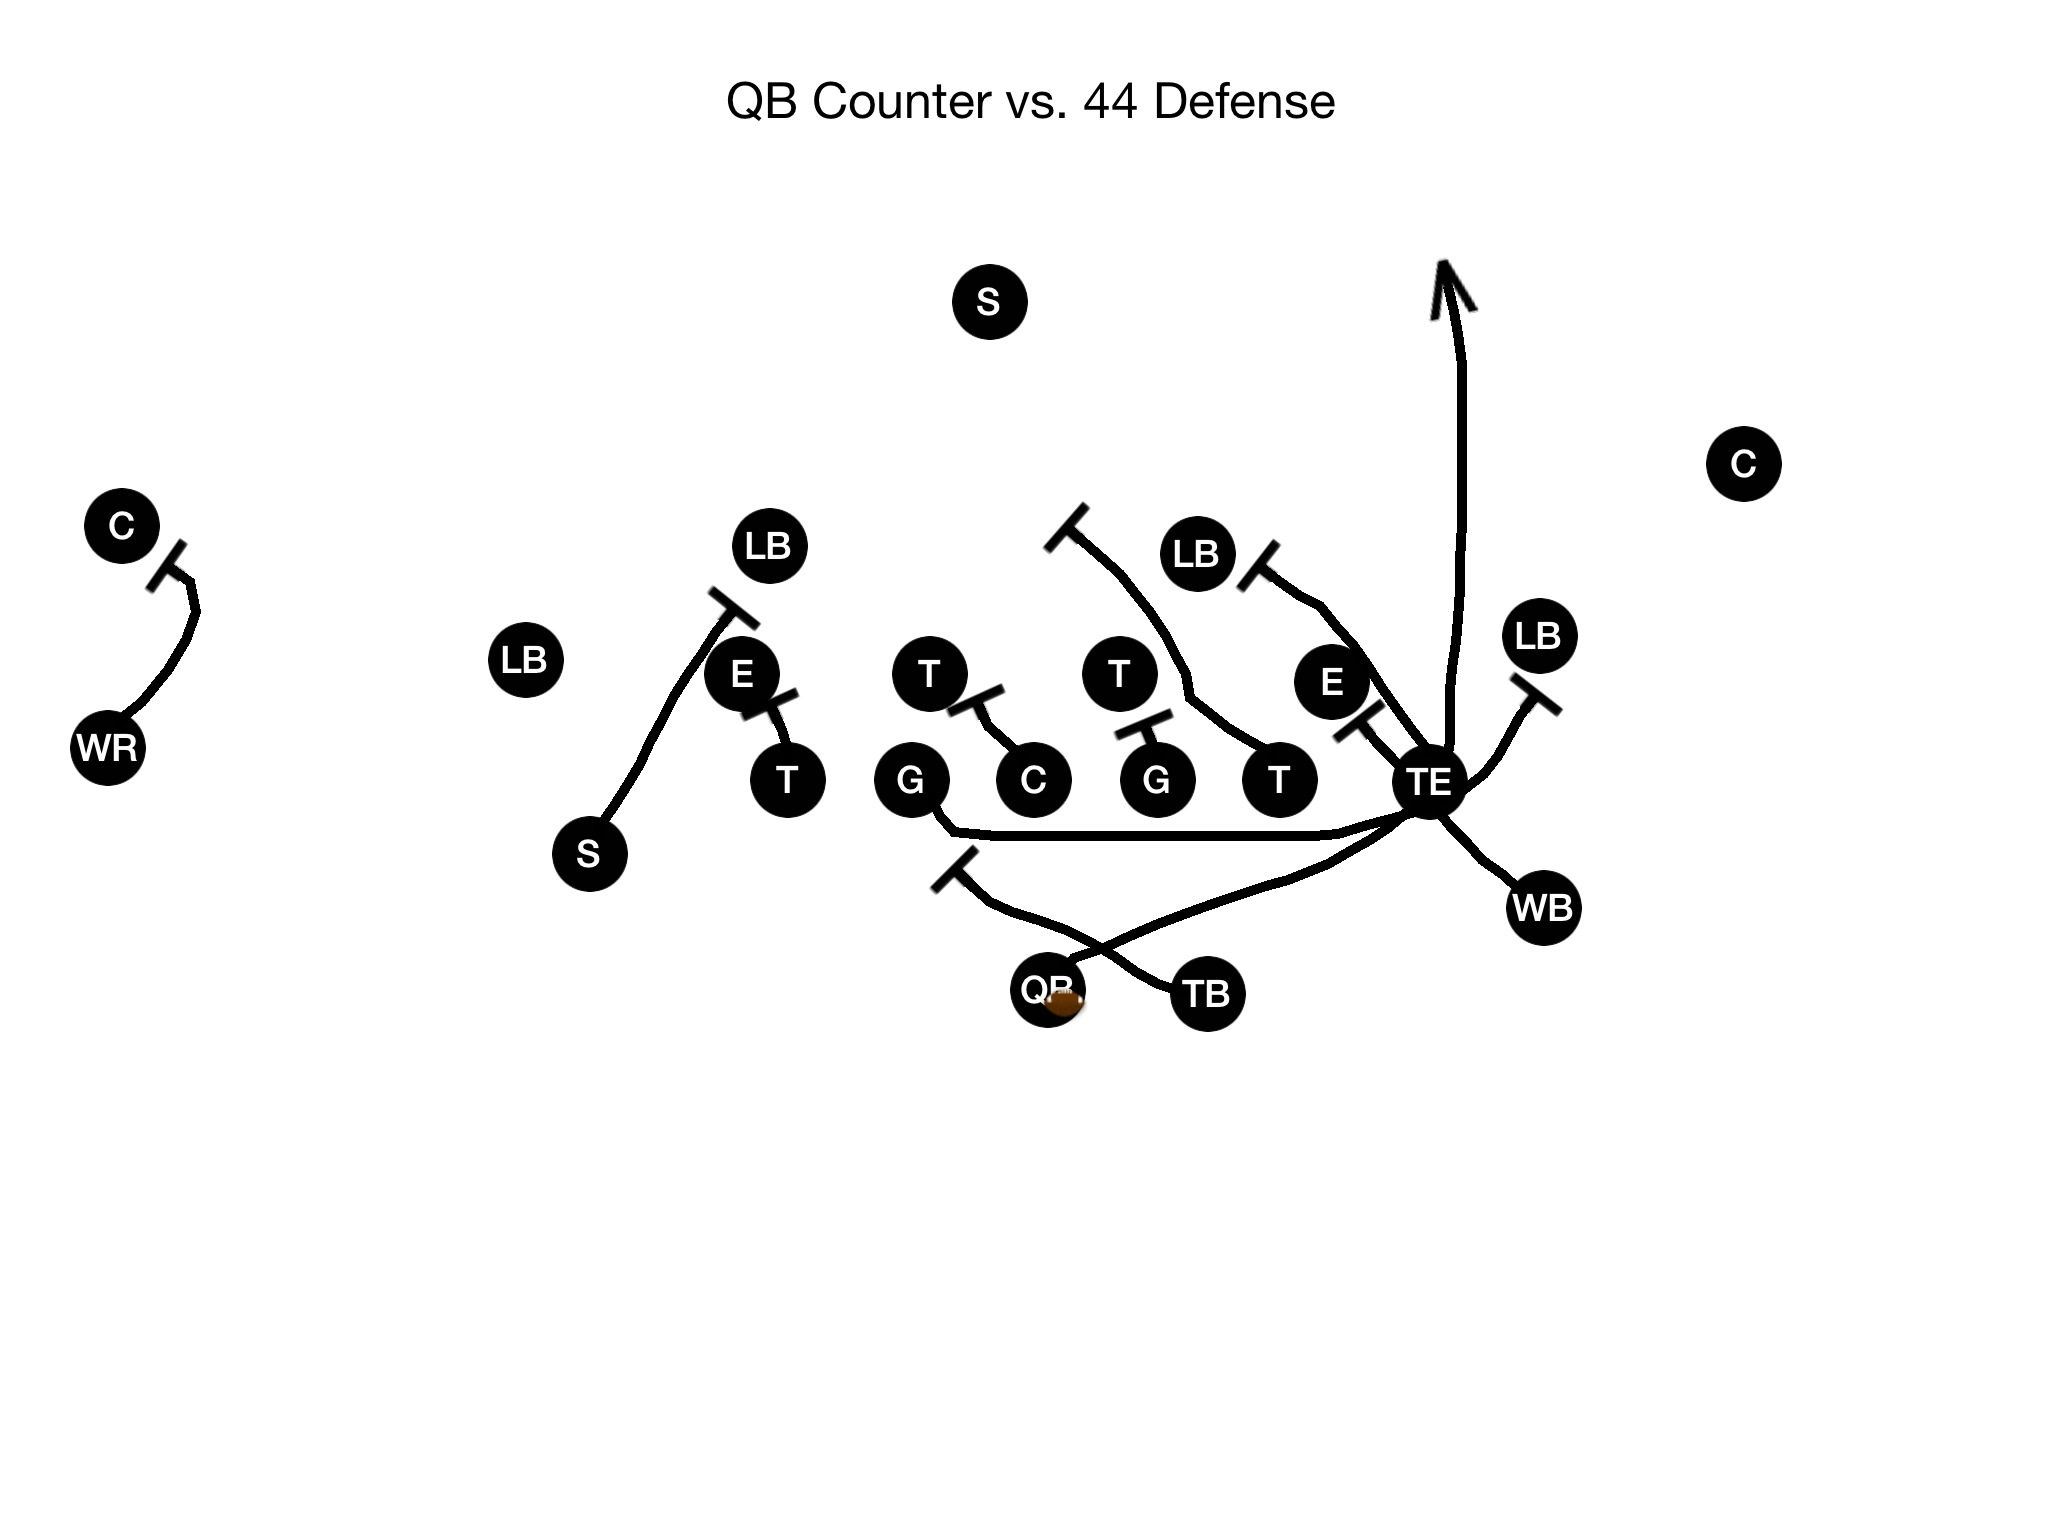 Quarterback Running Plays Qb Counter